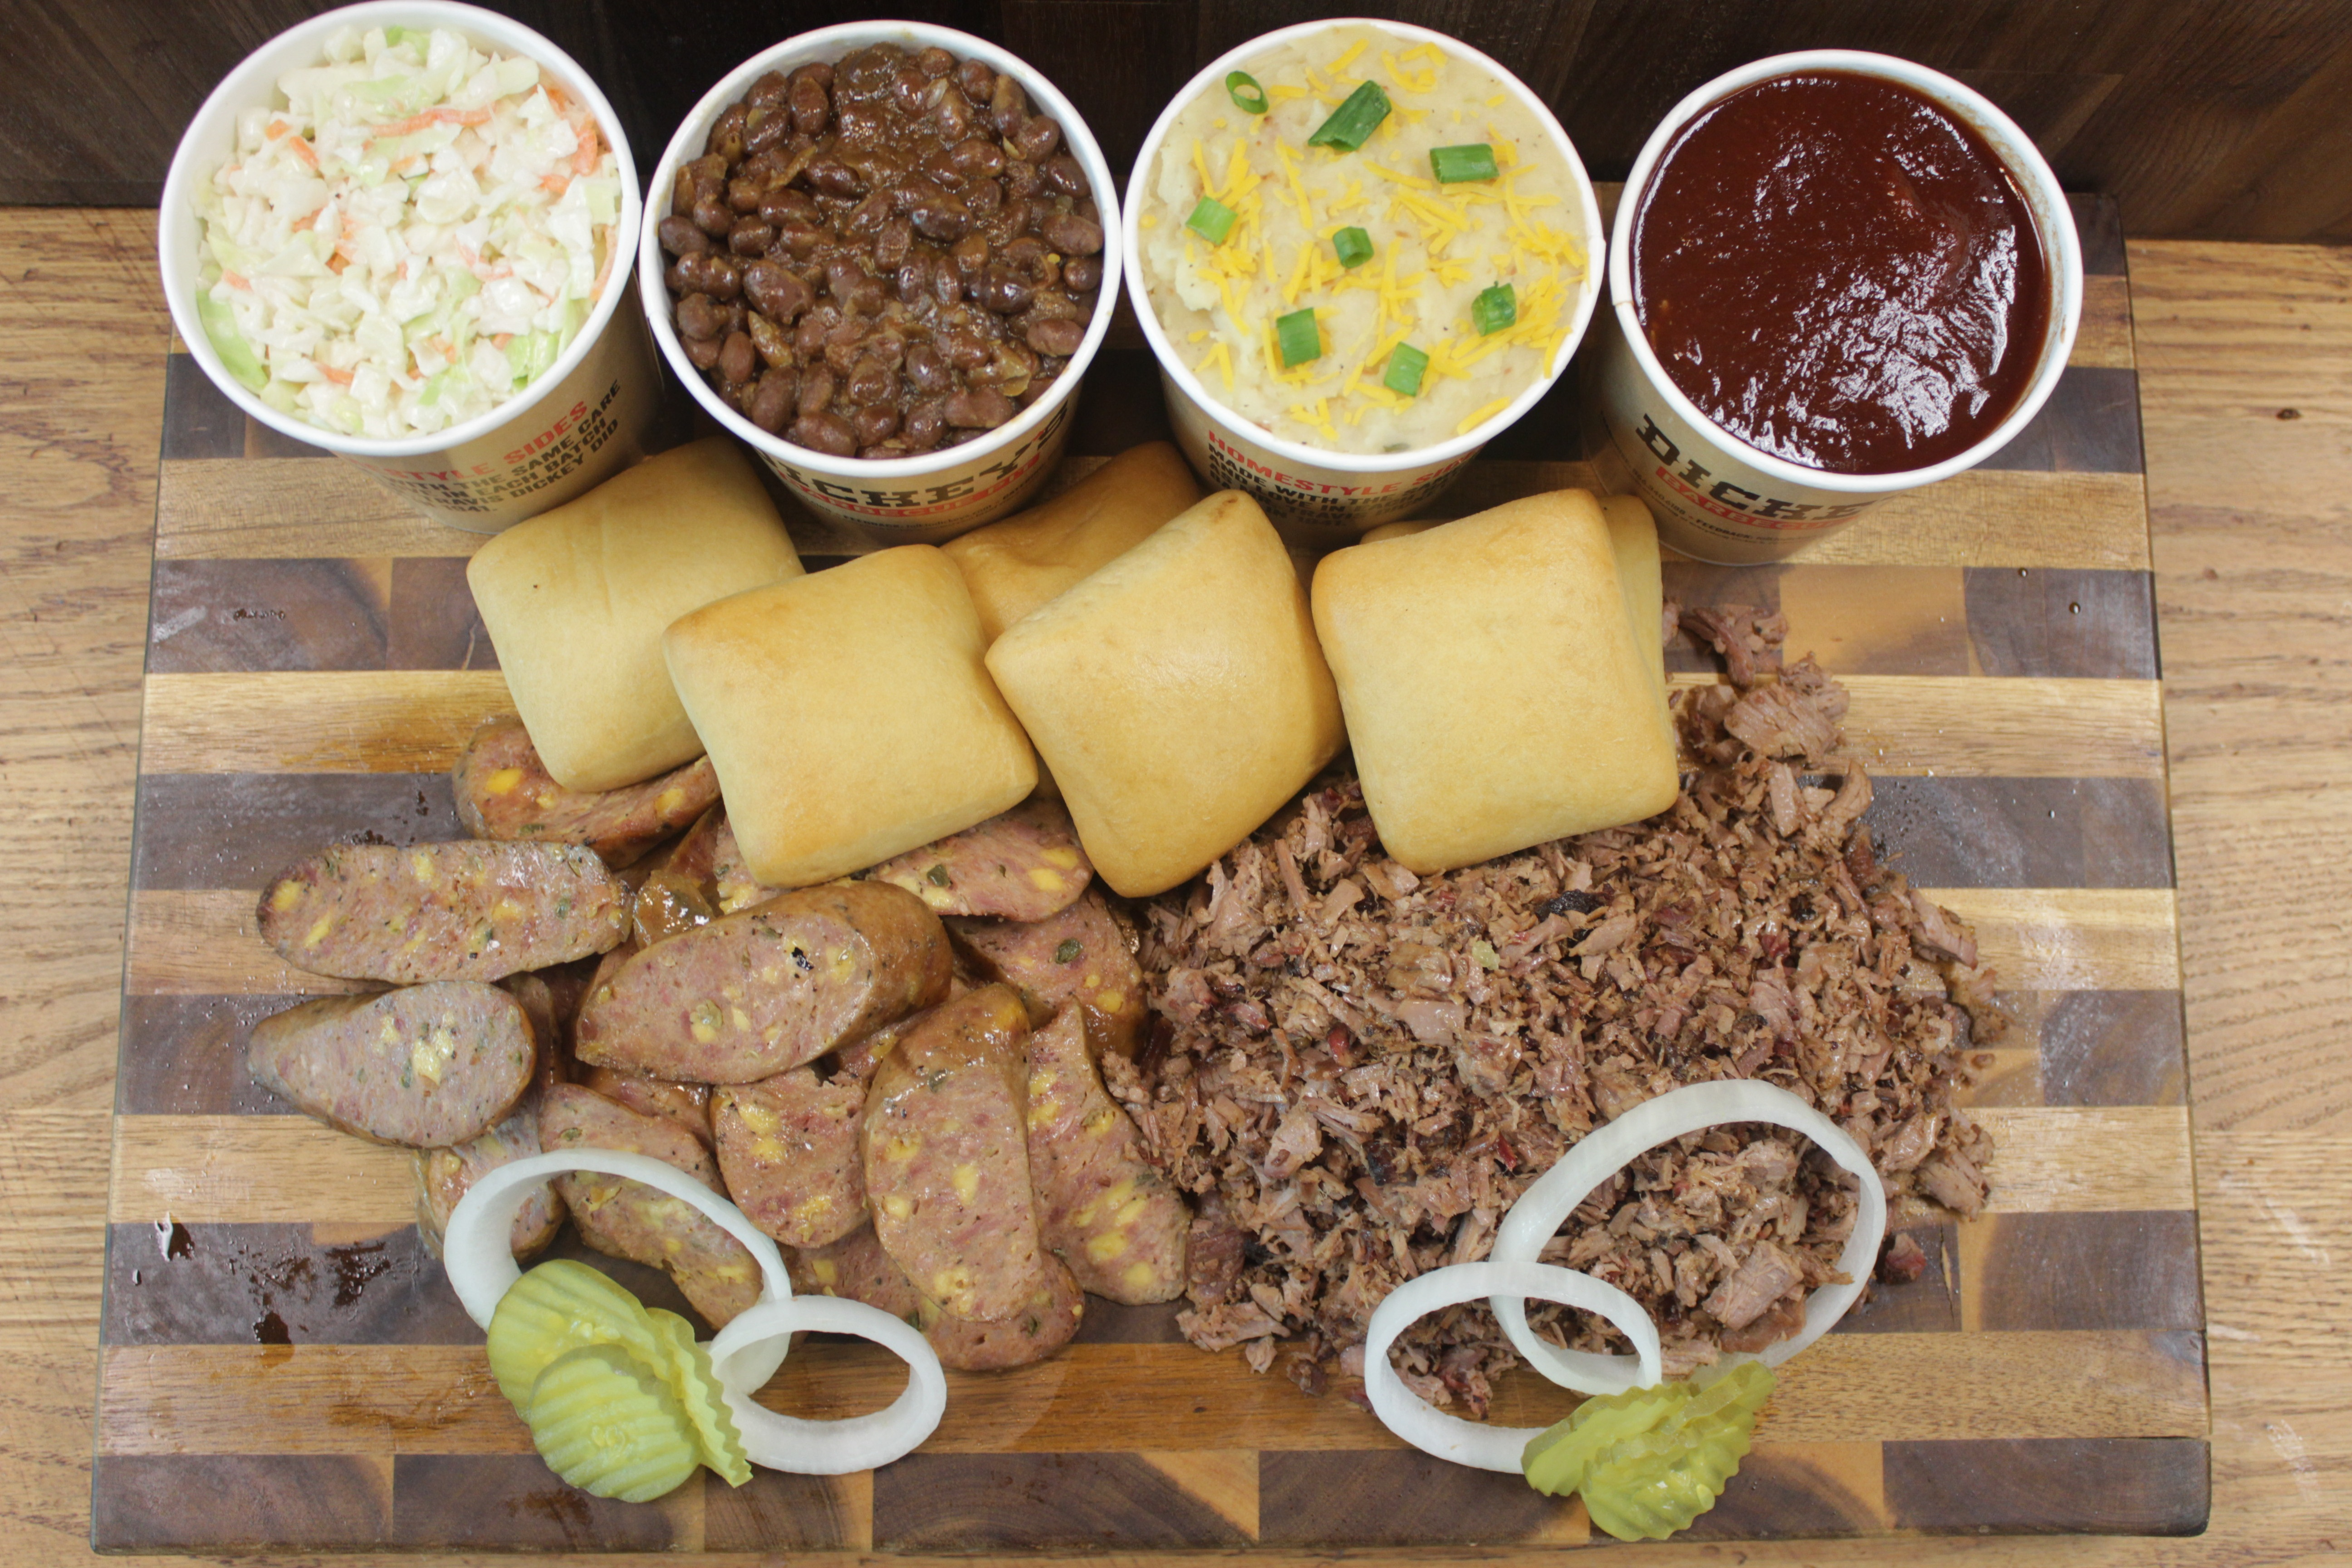 Press Release: Dickey's Barbecue Pit Announces Expansion Into 44th State